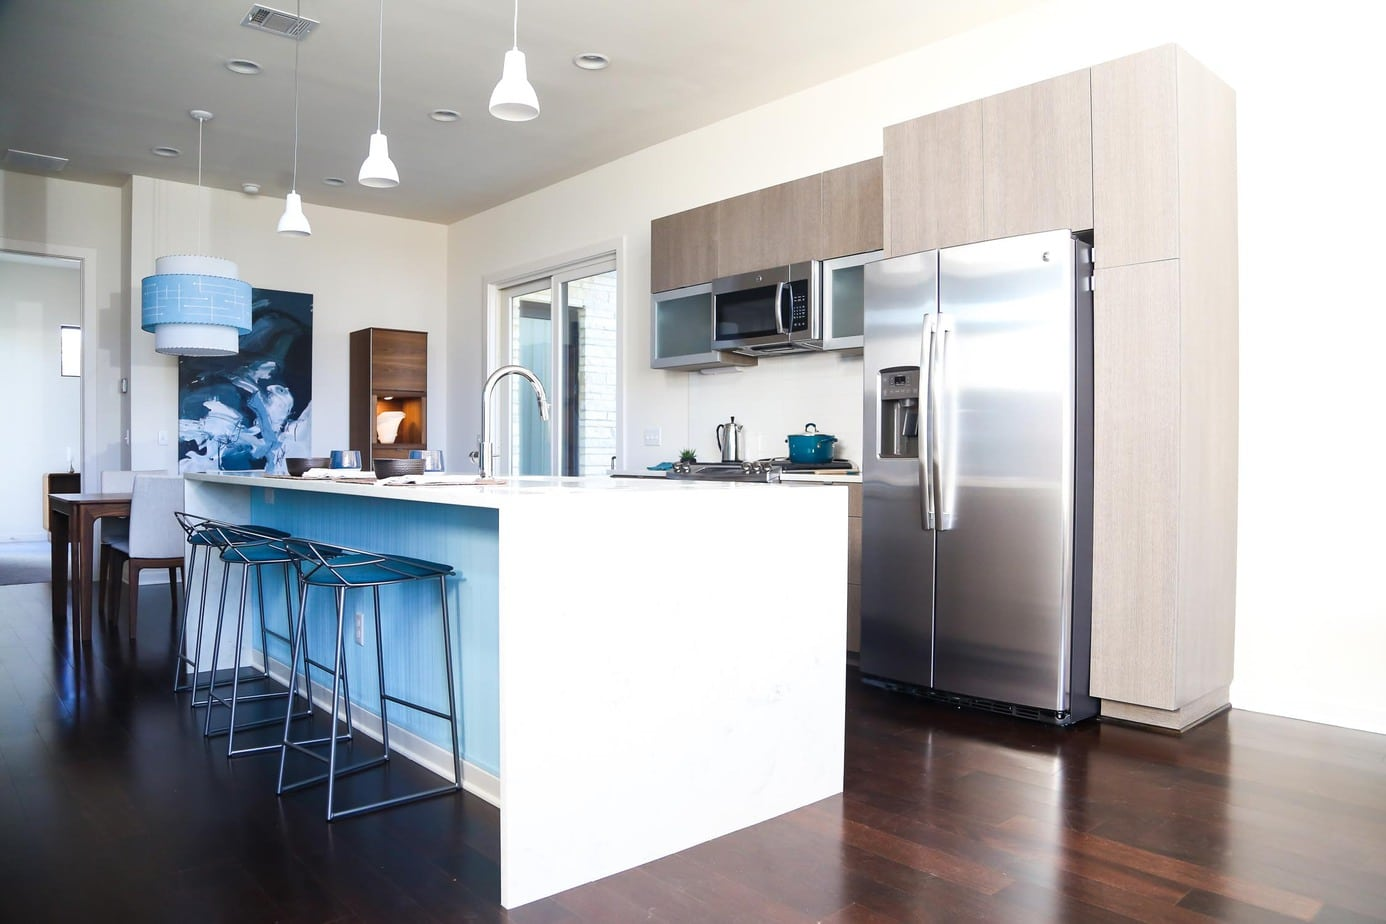 Starlight Village Homes - midcentury modern kitchen design